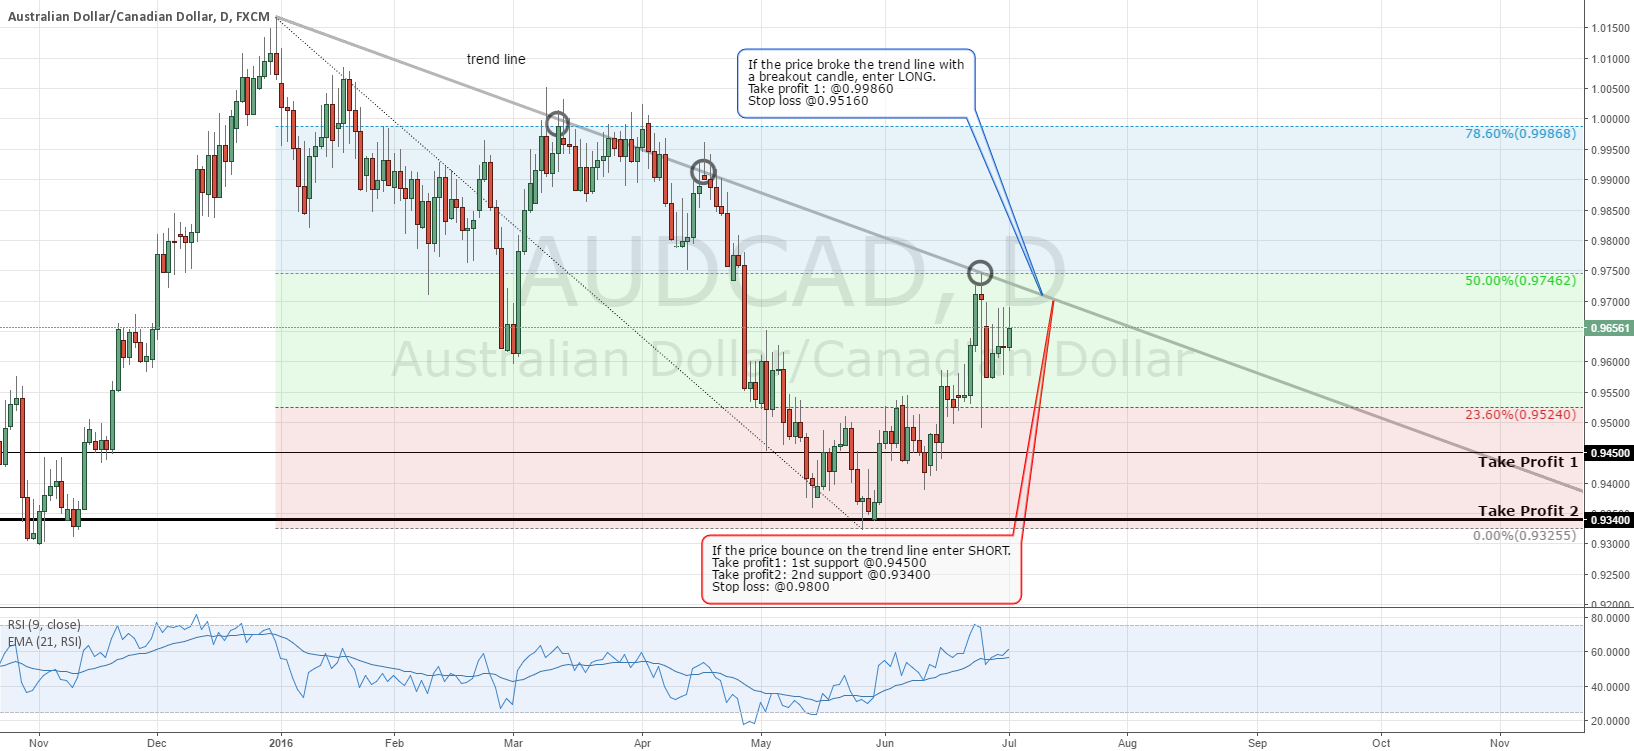 AUD/CAD - Daily Chart Analysis - Waiting a Breakout